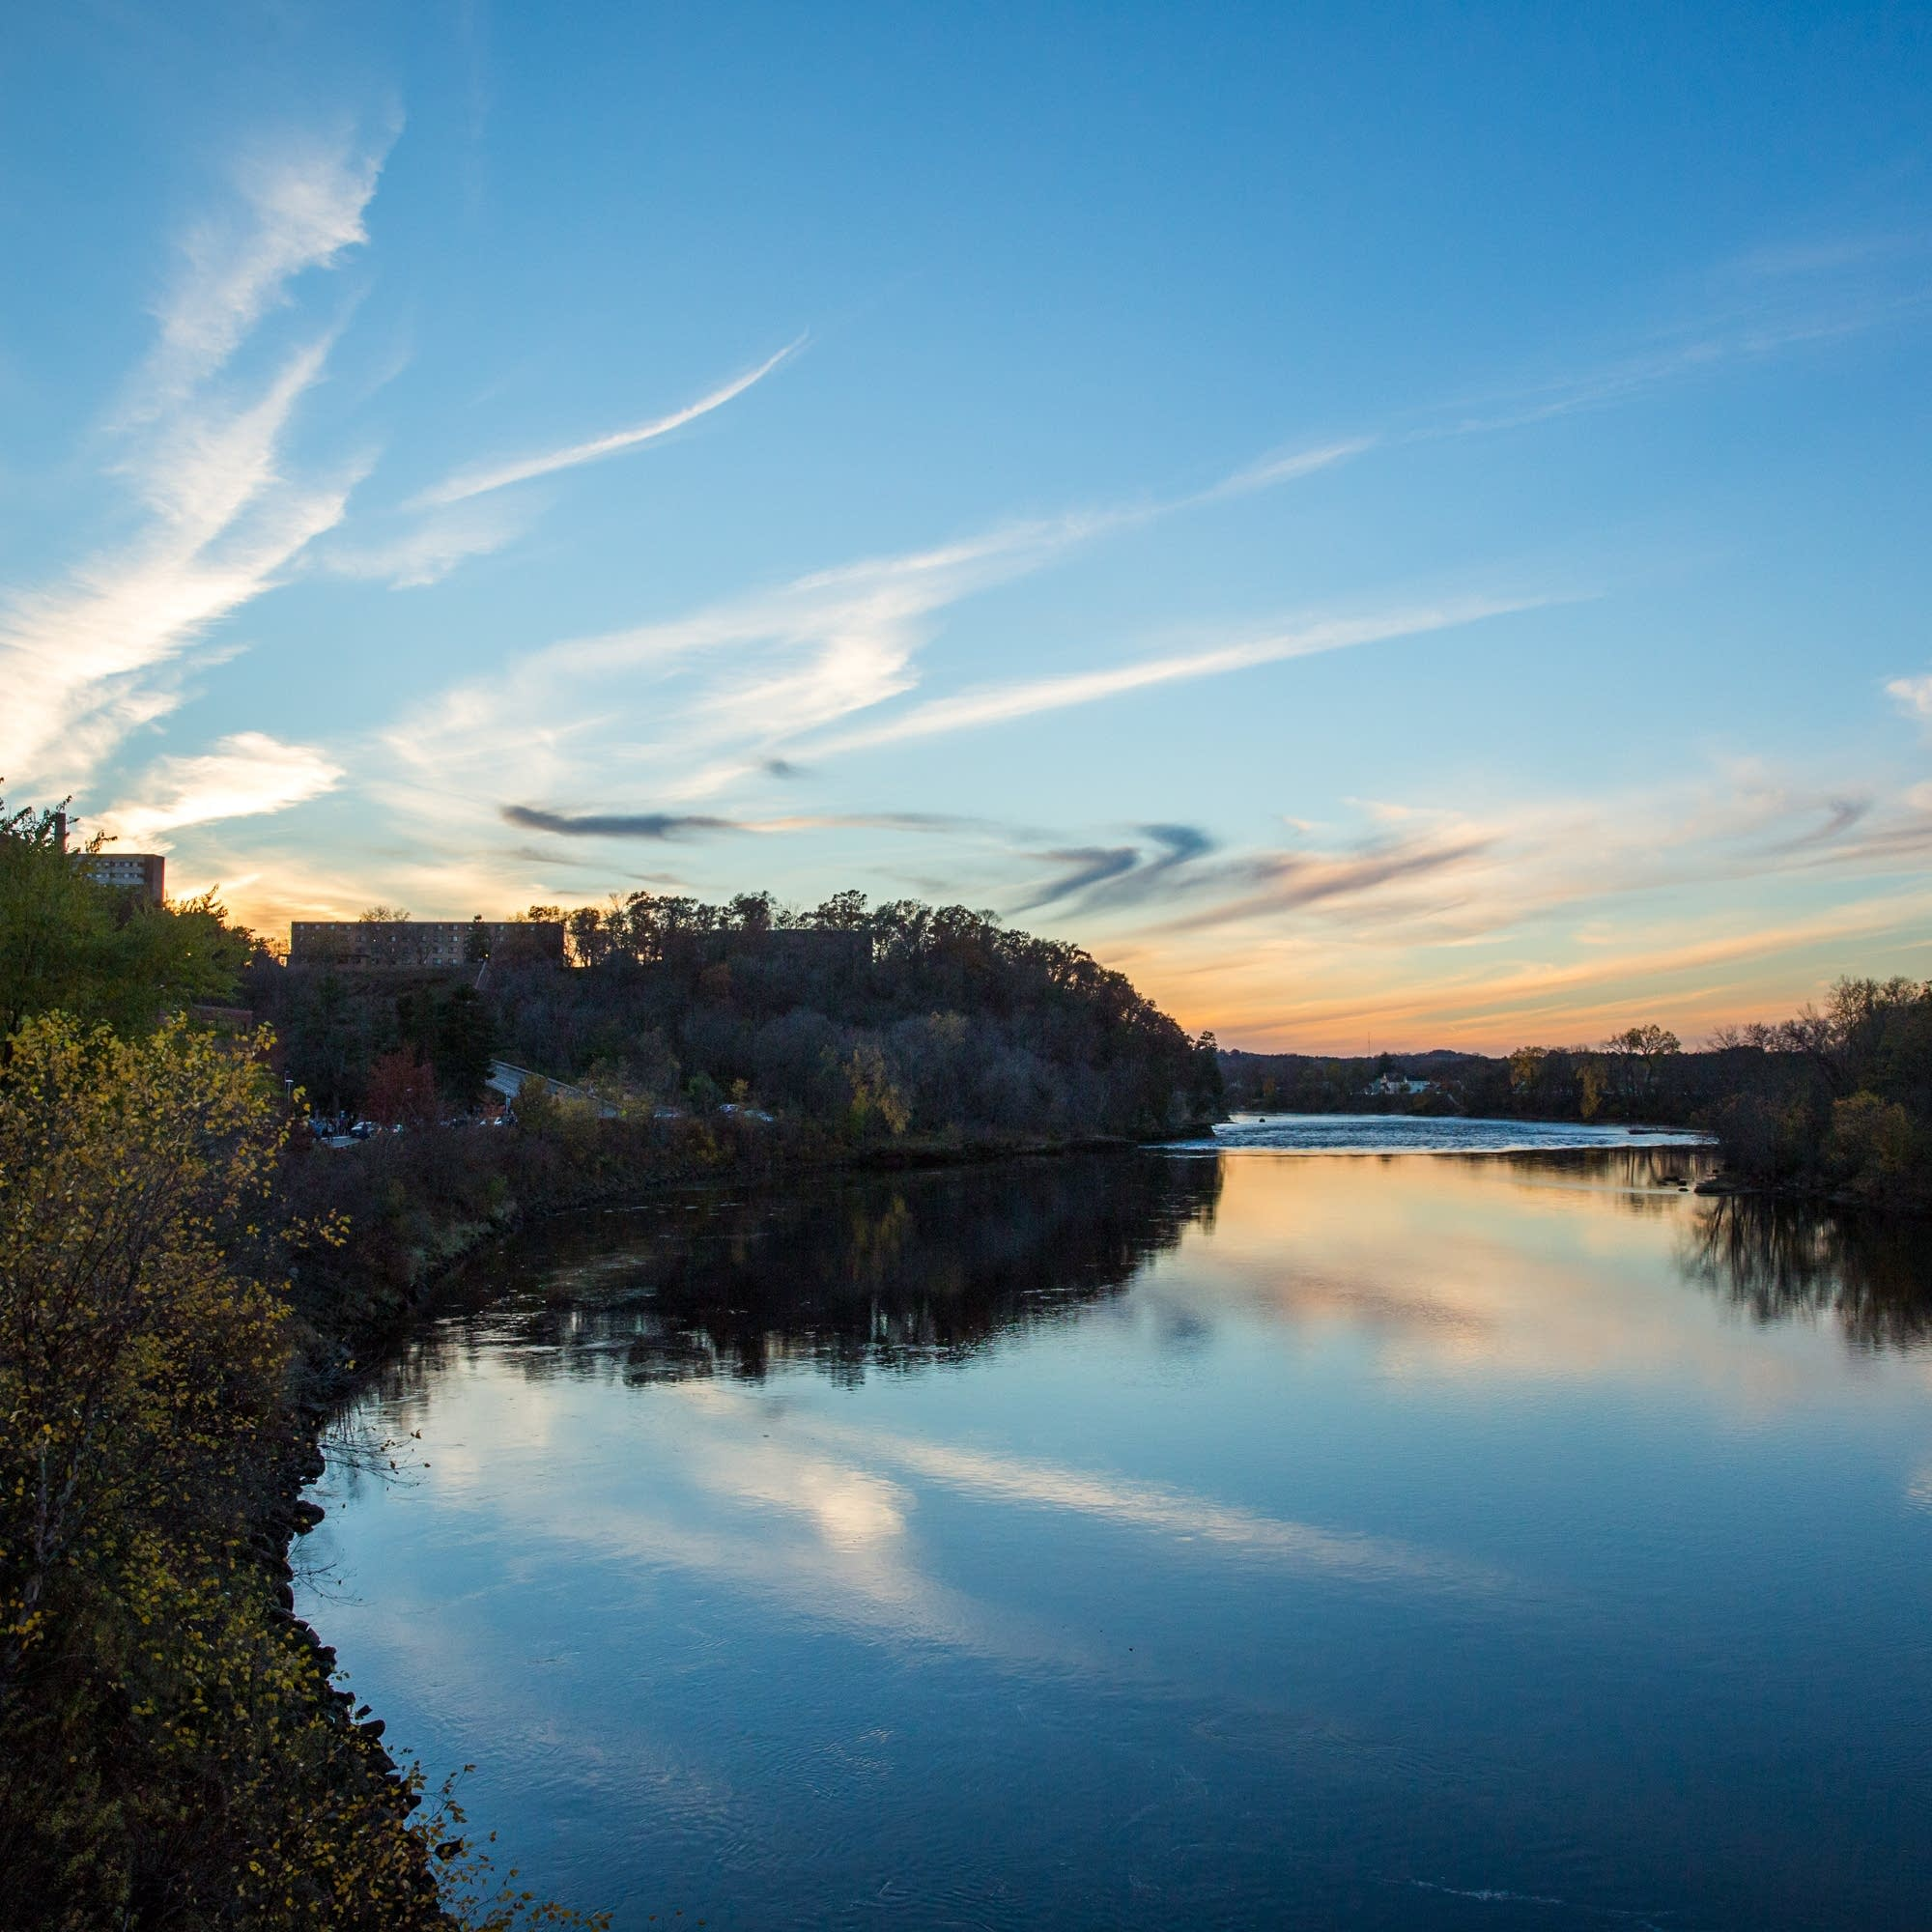 The sunset sky reflects on the Chippewa River.